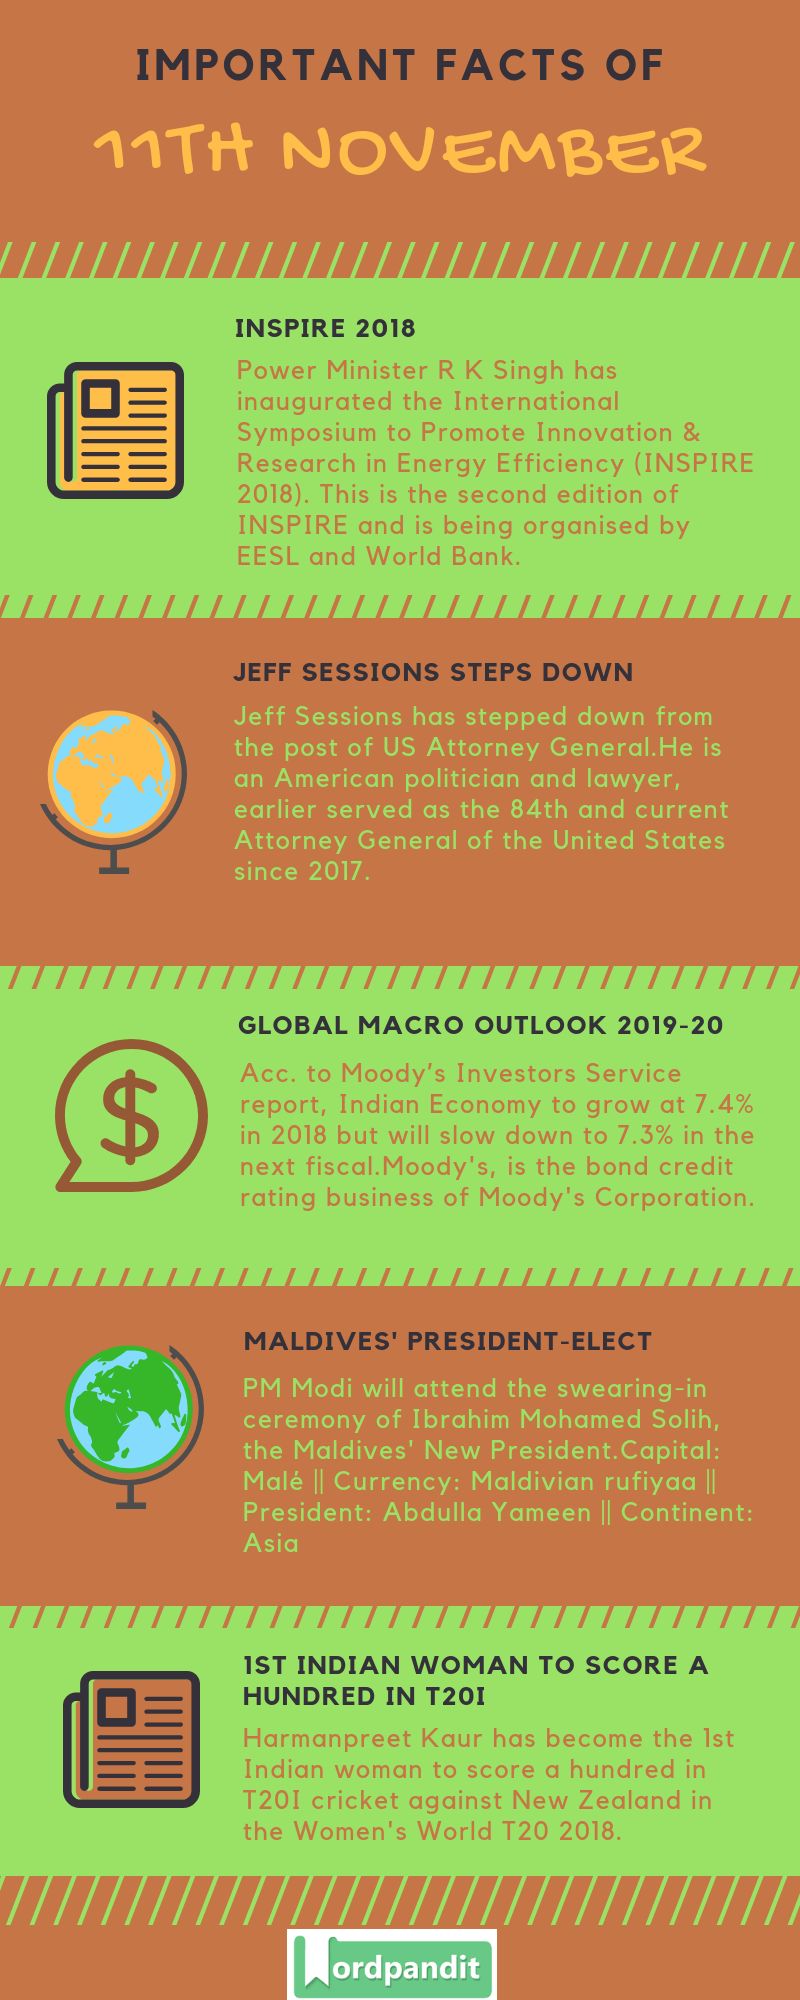 Daily Current Affairs 11 November 2018 Current Affairs Quiz 11 November 2018 Current Affairs Infographic